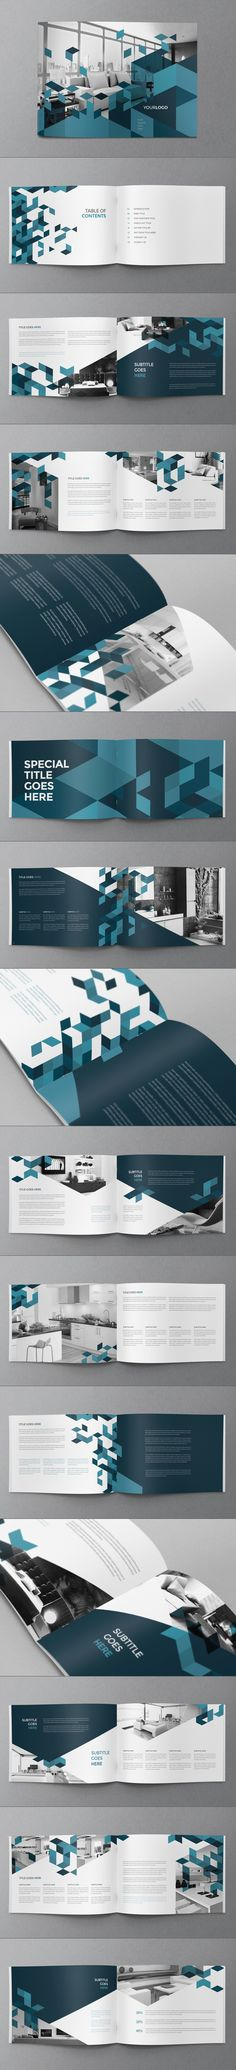 Blue Square Pattern Brochure. Download here: http://graphicriver.net/item/blue-square-pattern-brochure/8542023?ref=abradesign #design #brochure